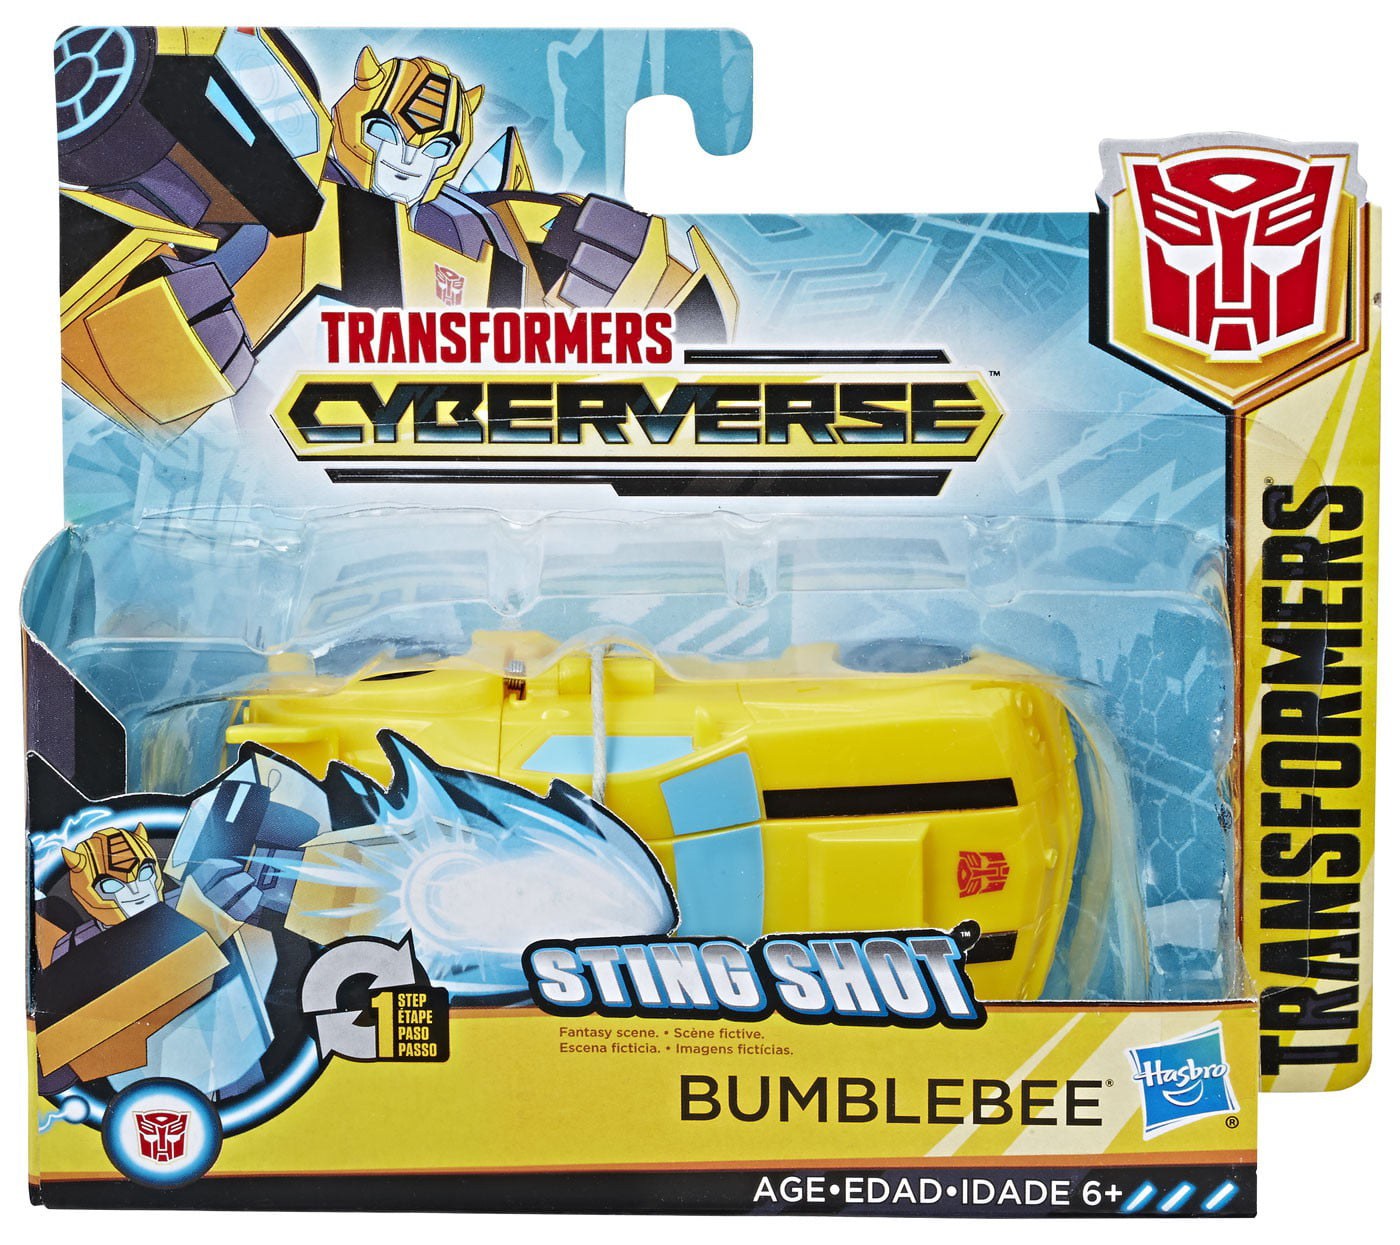 Transformers Cyberverse Action Attackers 1-Step Changer Bumblebee Action Figure